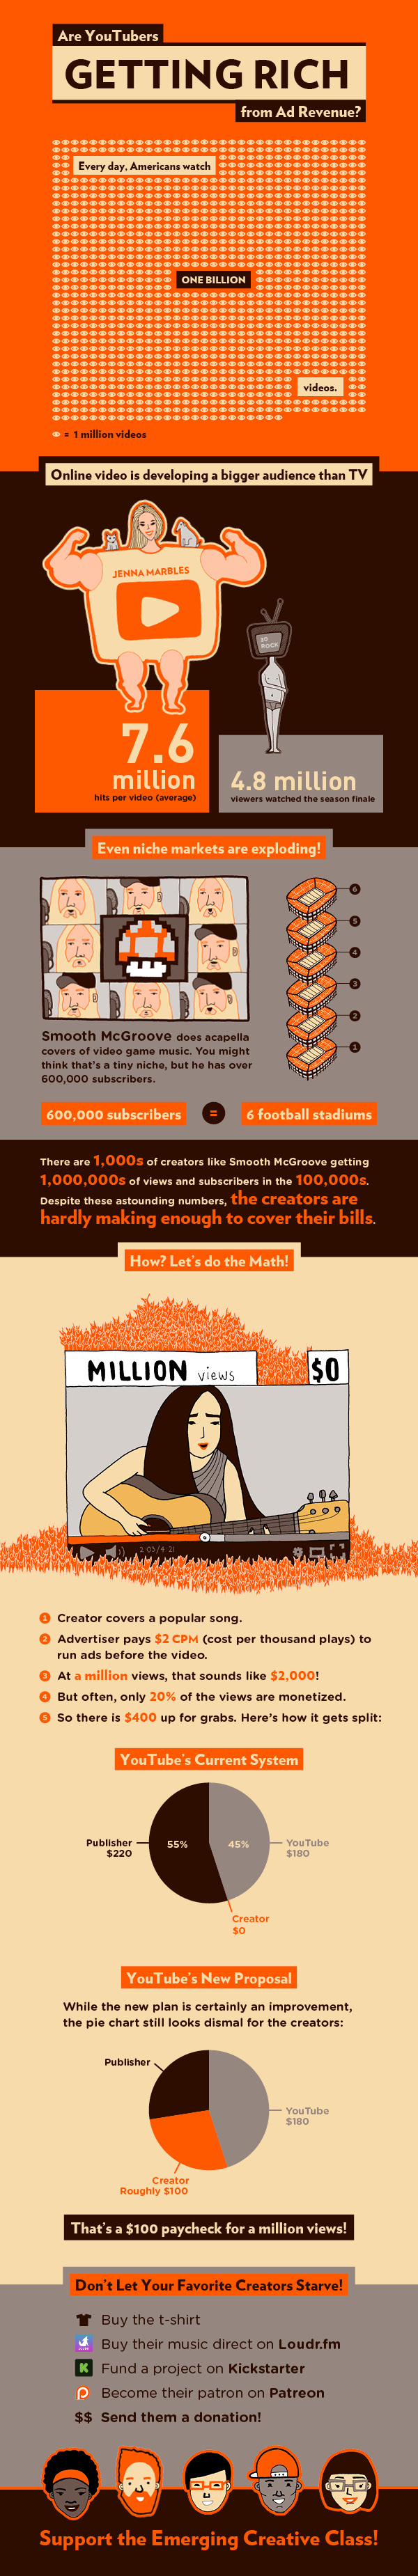 Are Youtubers Getting Rich From Ad Revenue #infographic